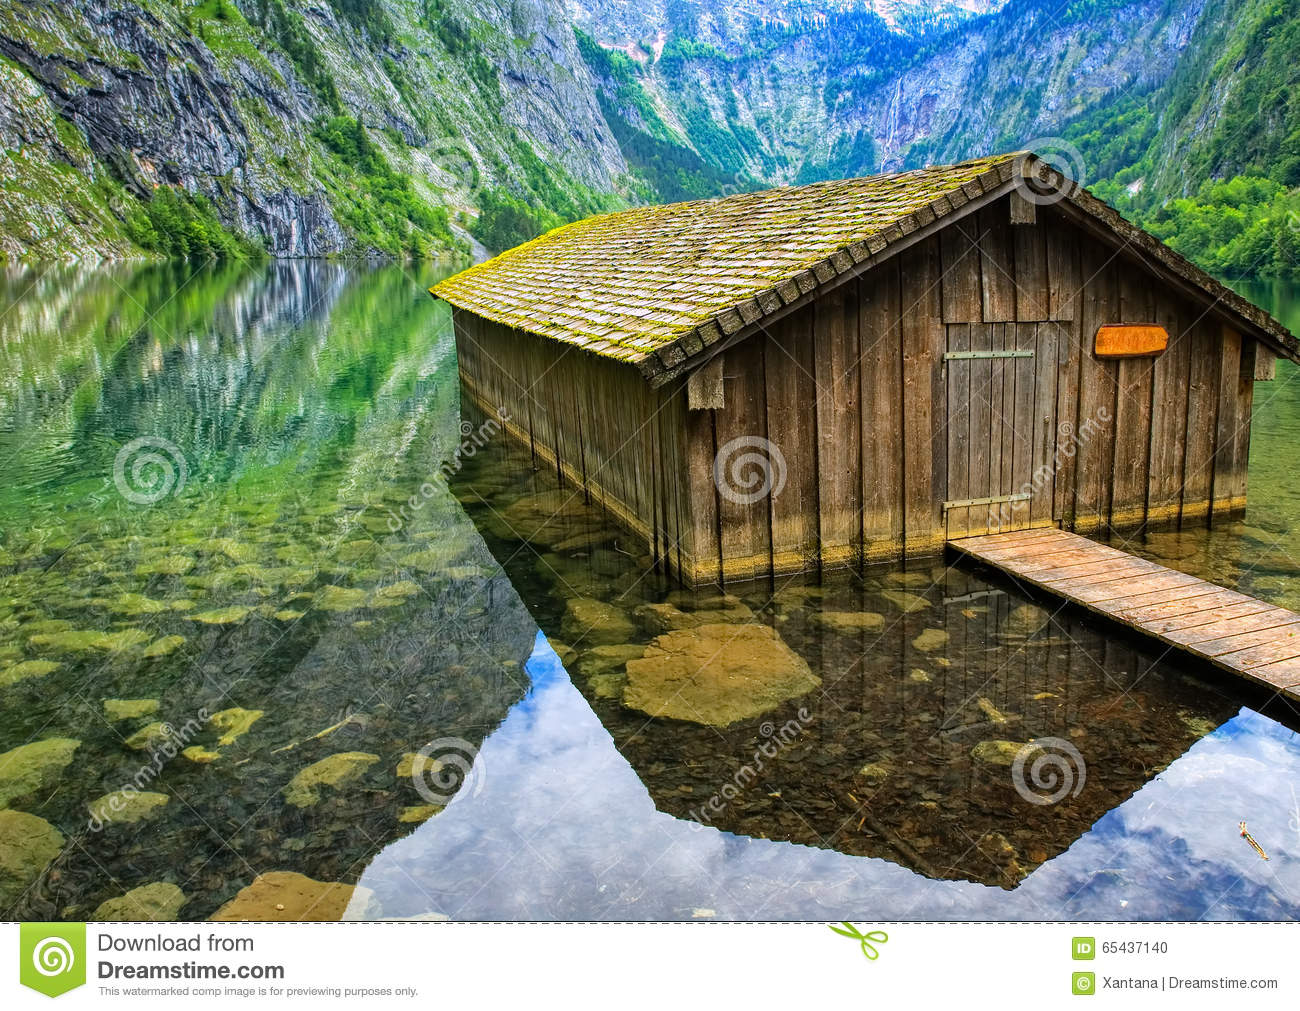 Fisherman's House On Konigsee Lake In The Alps Mountains, German.